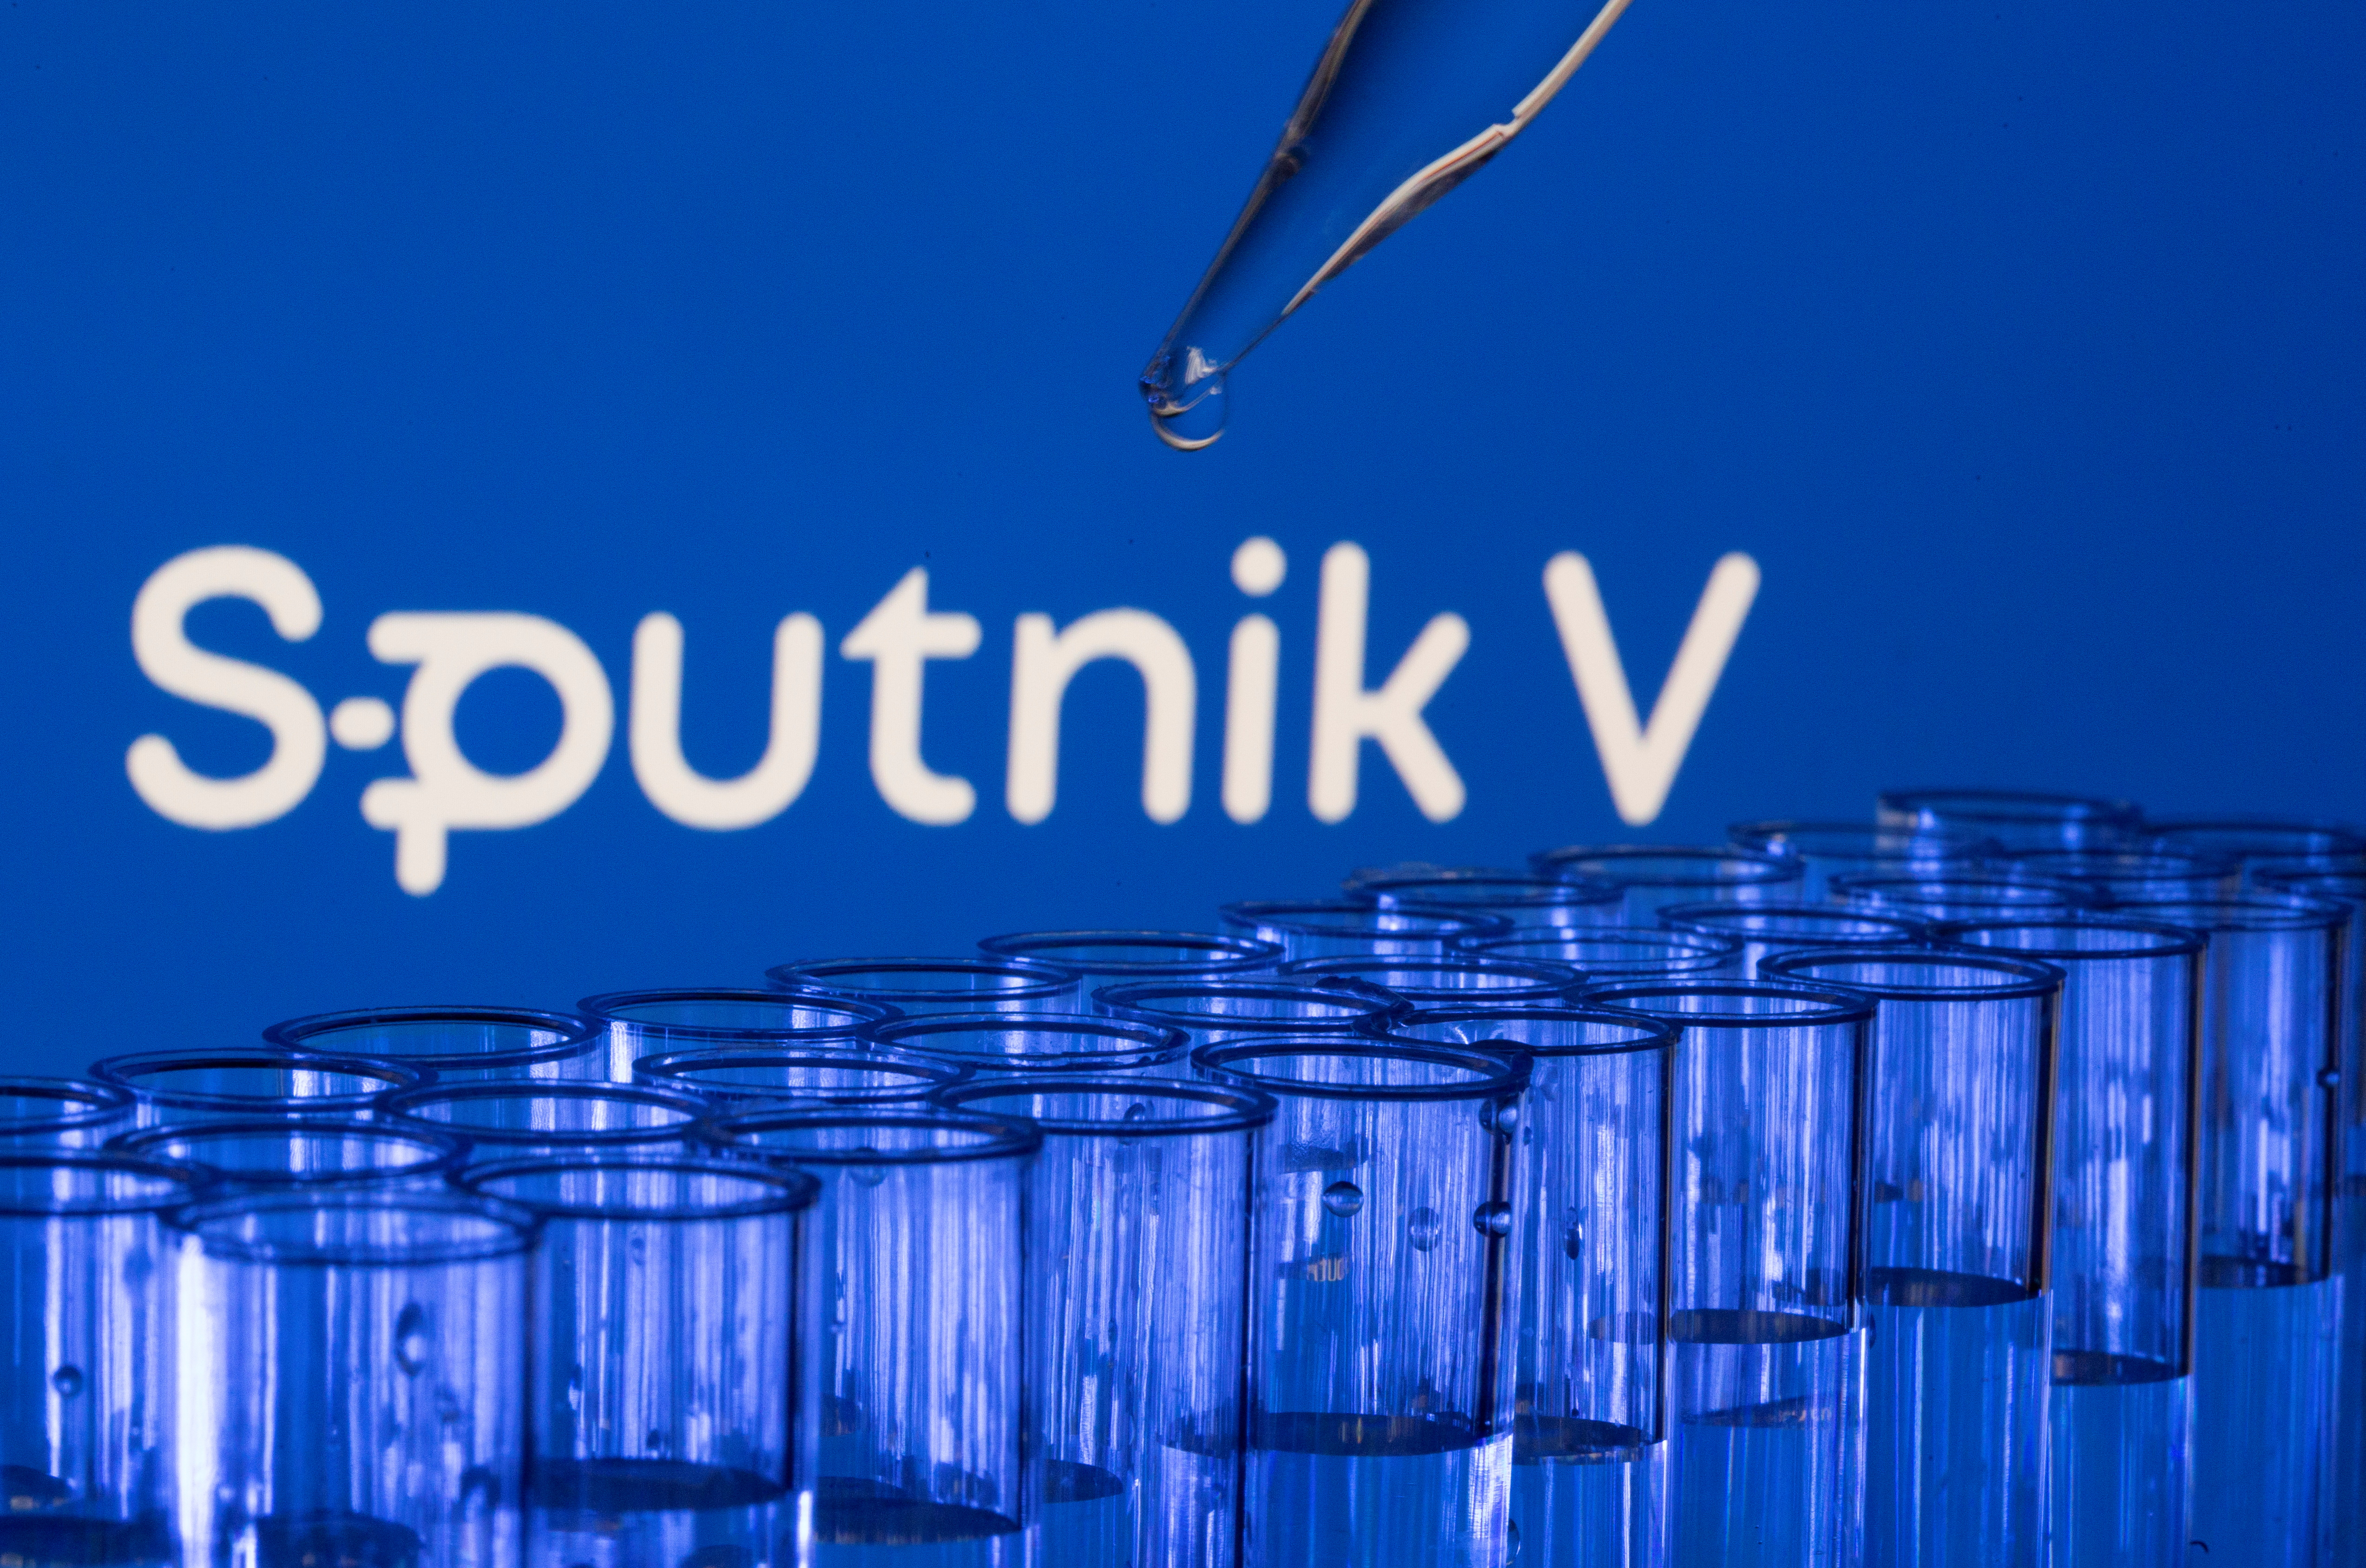 Test tubes are seen in front of a displayed Sputnik V logo in this illustration taken, May 21, 2021. REUTERS/Dado Ruvic/Illustration